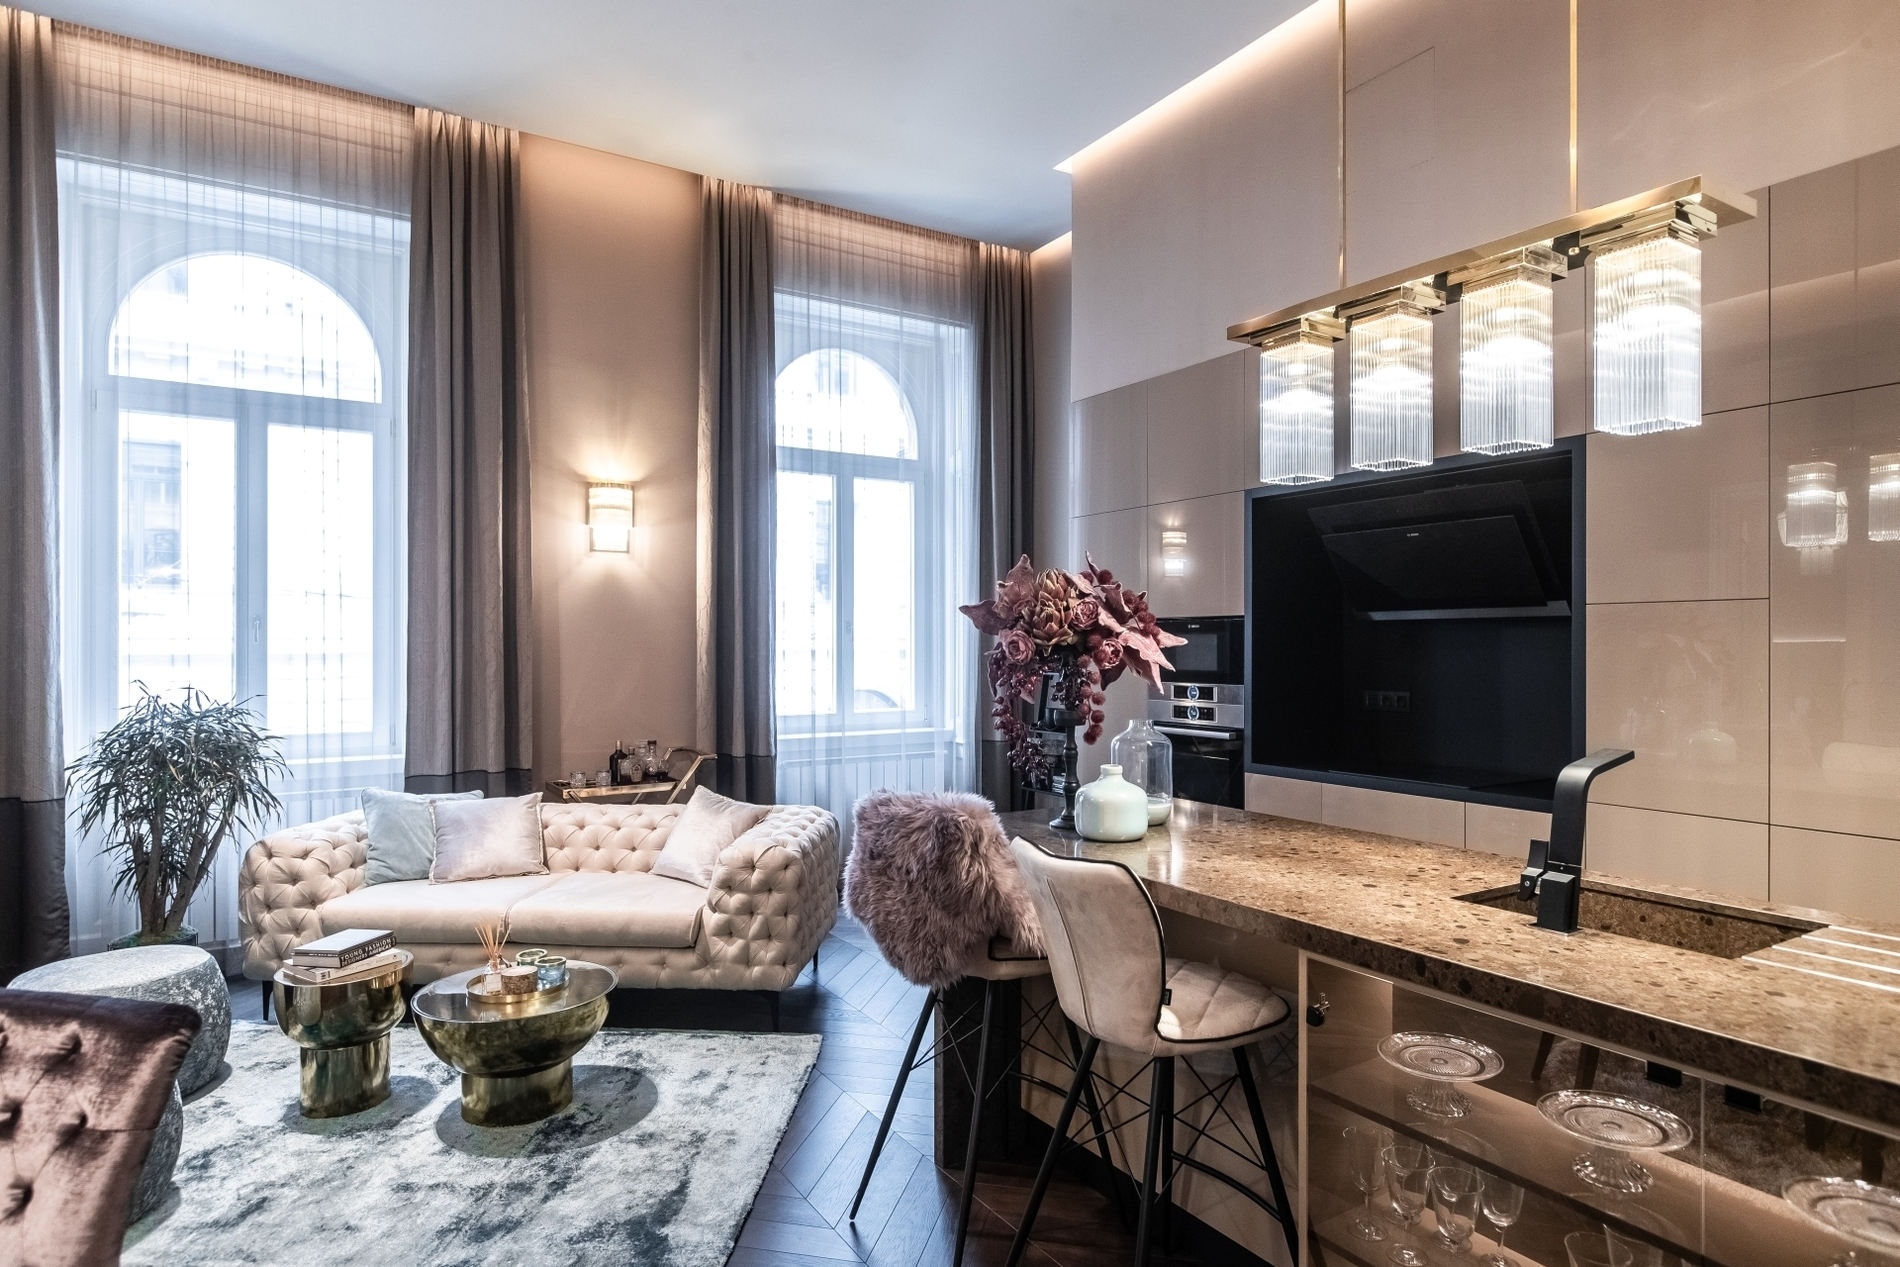 luxuriously-designed-renovated-apartment-for-sale-pest-hungary-italian-floors-tiles